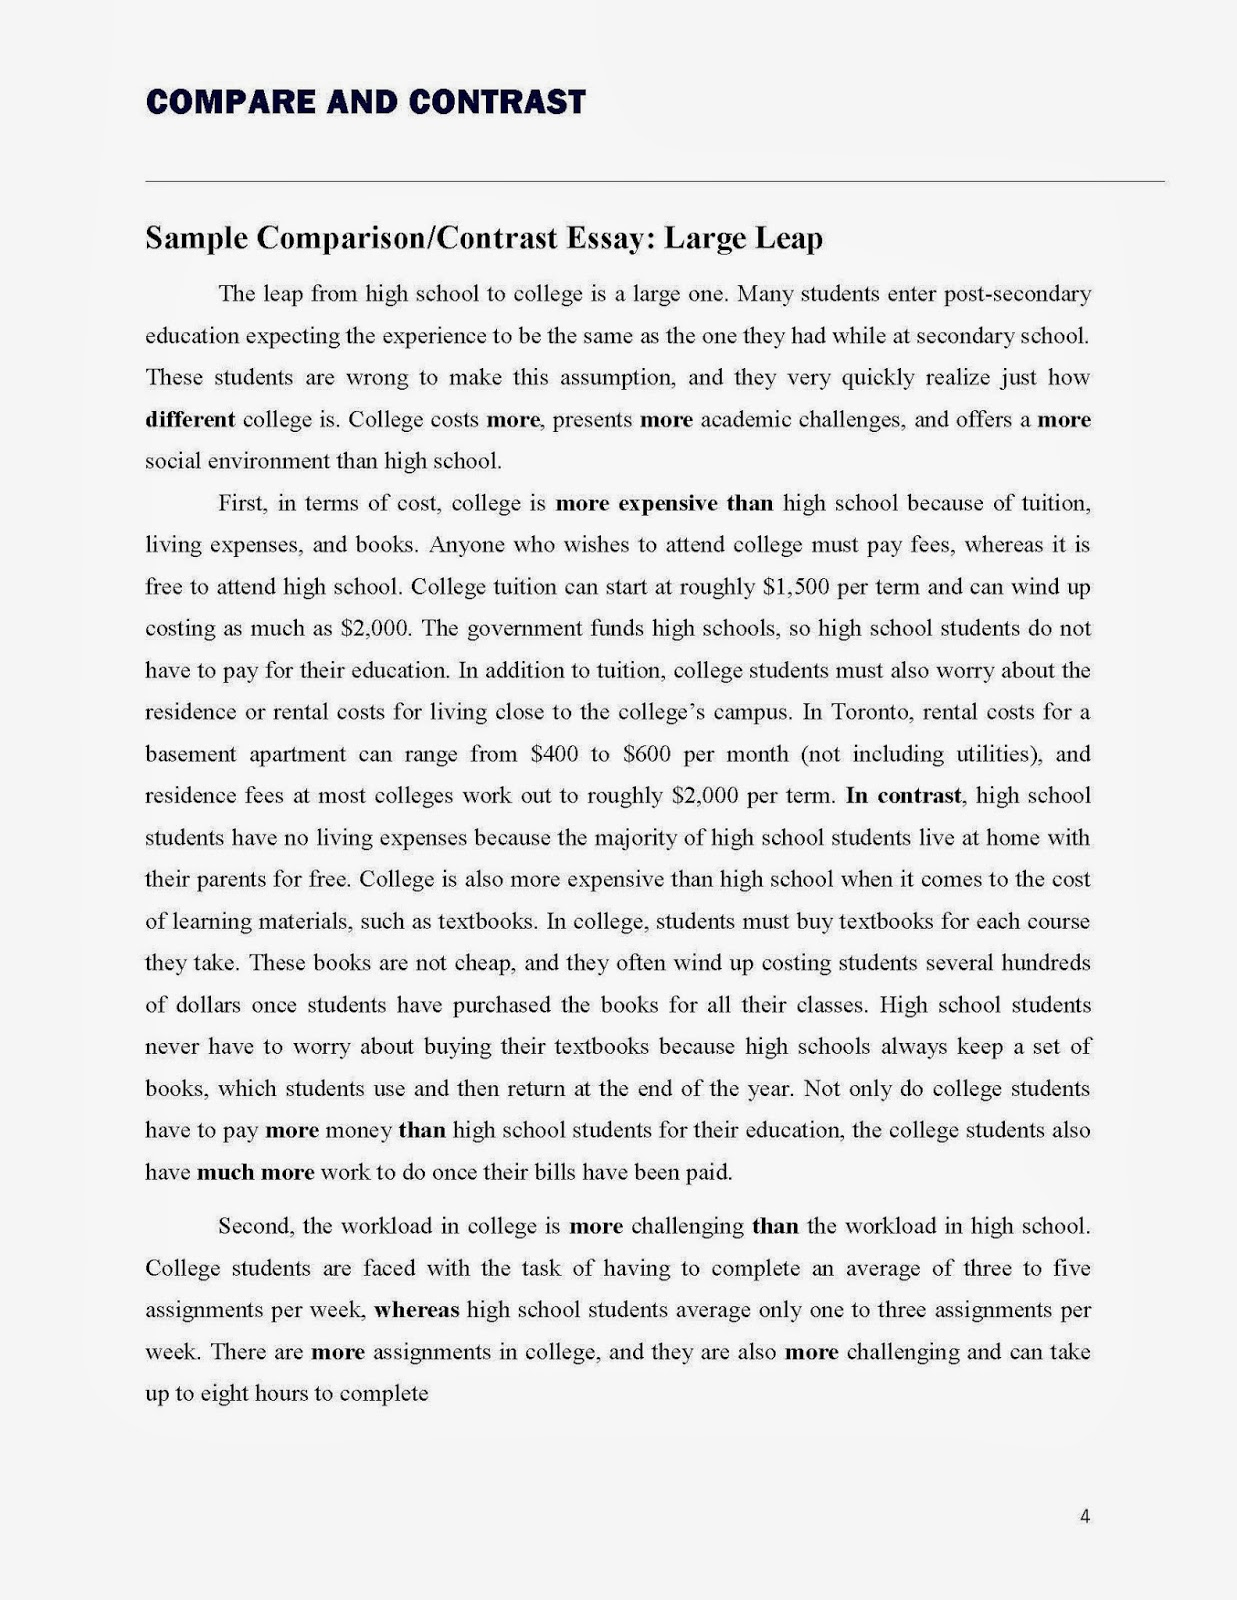 011 Good Compare And Contrast Essay Compare20and20contrast20essay Page 4 Unbelievable The Great Gatsby Tom Examples Middle School Movie Book Full